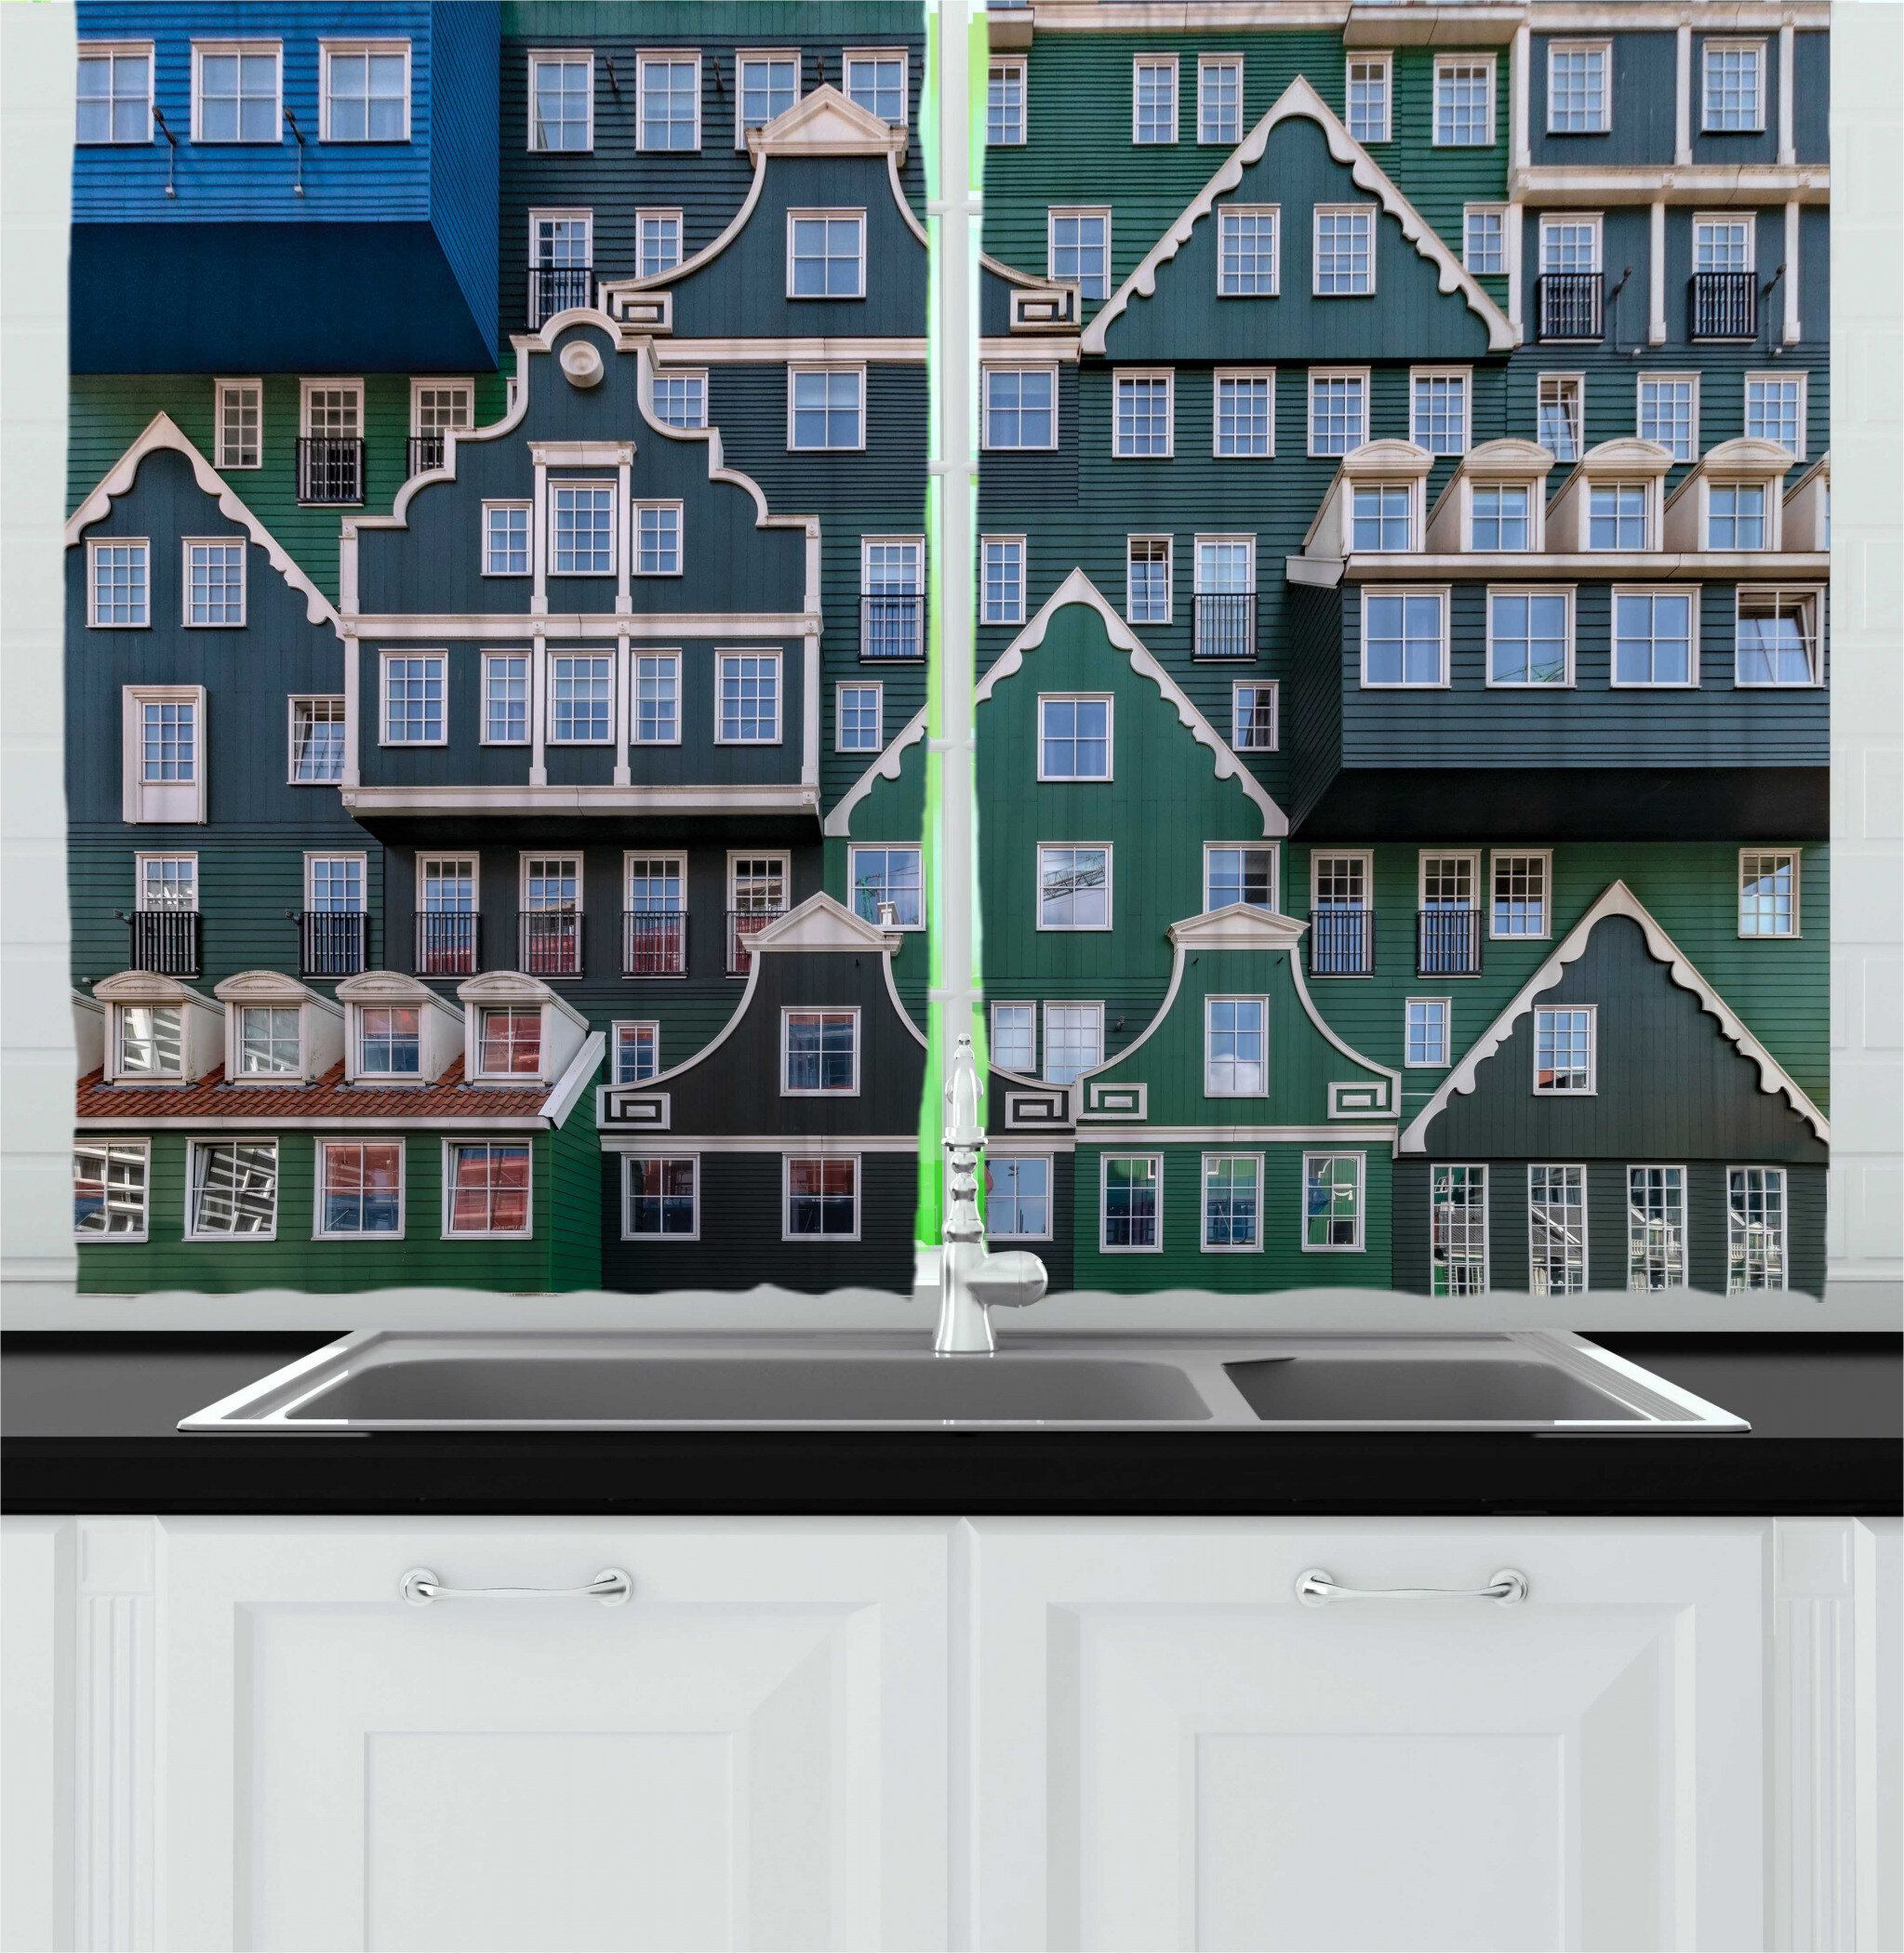 East Urban Home 2 Piece Amsterdam Close Up Image Of Buildings Influenced By Dutch Architectures And Themes Kitchen Curtain Set Wayfair